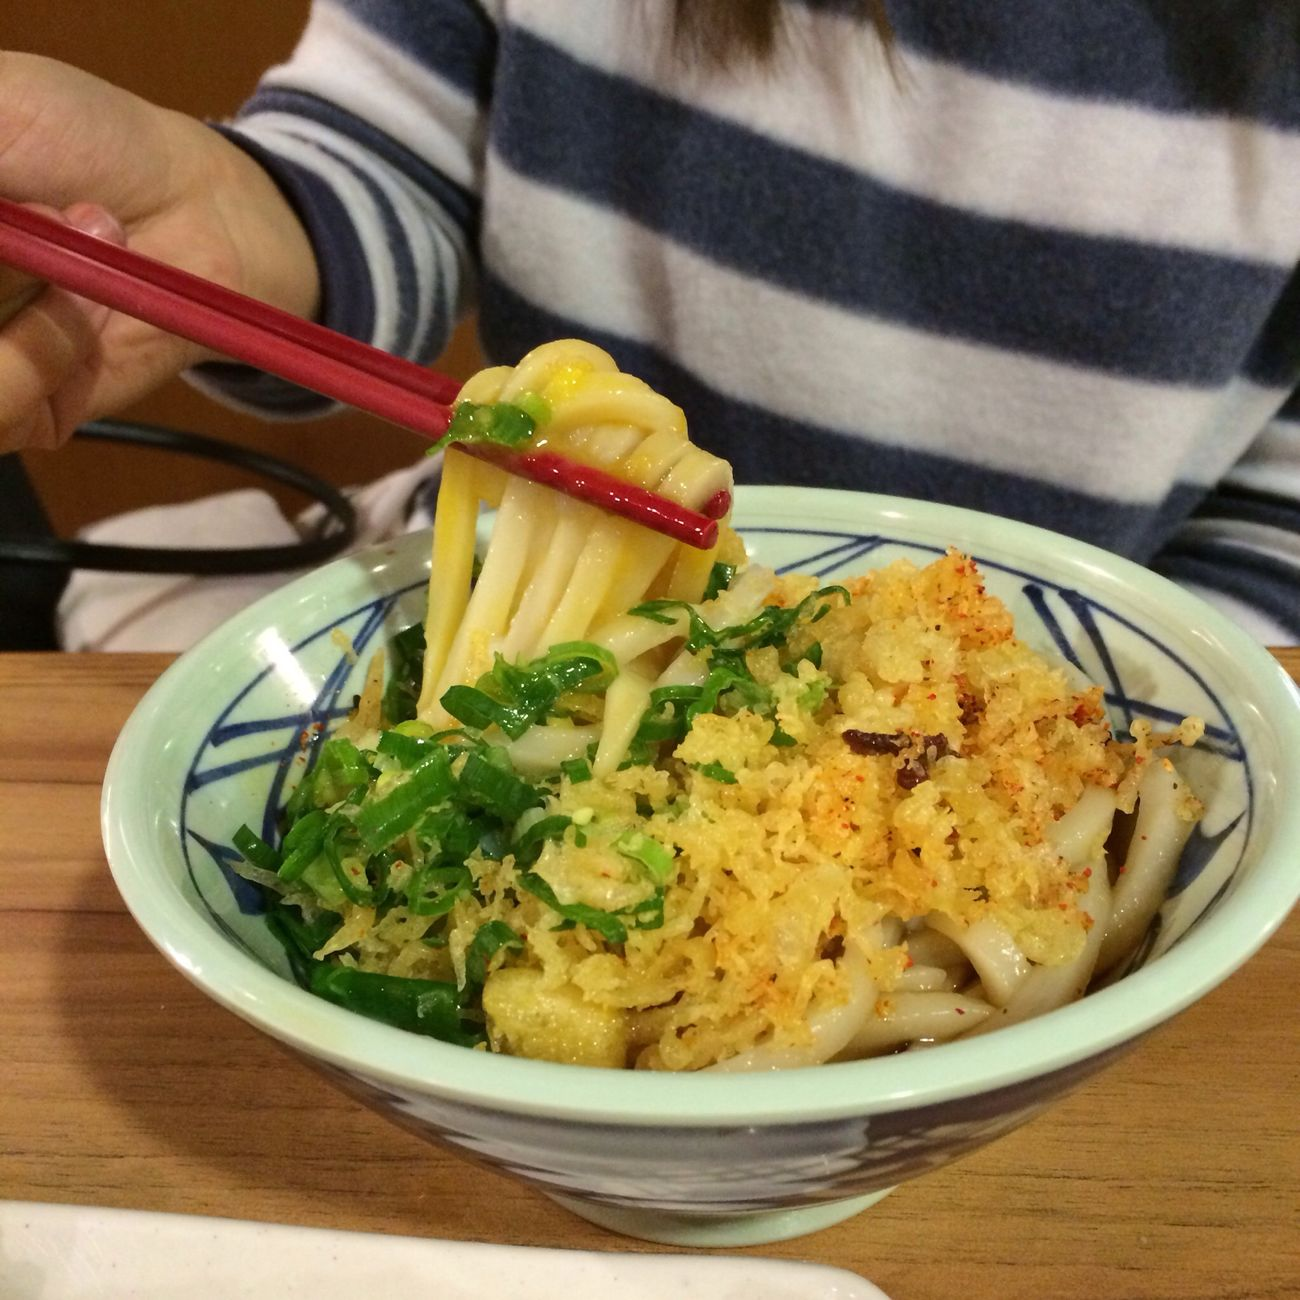 溫玉烏龍麵 Udon Noodles Enjoying Life Food Rome Wasn't Built In A Day